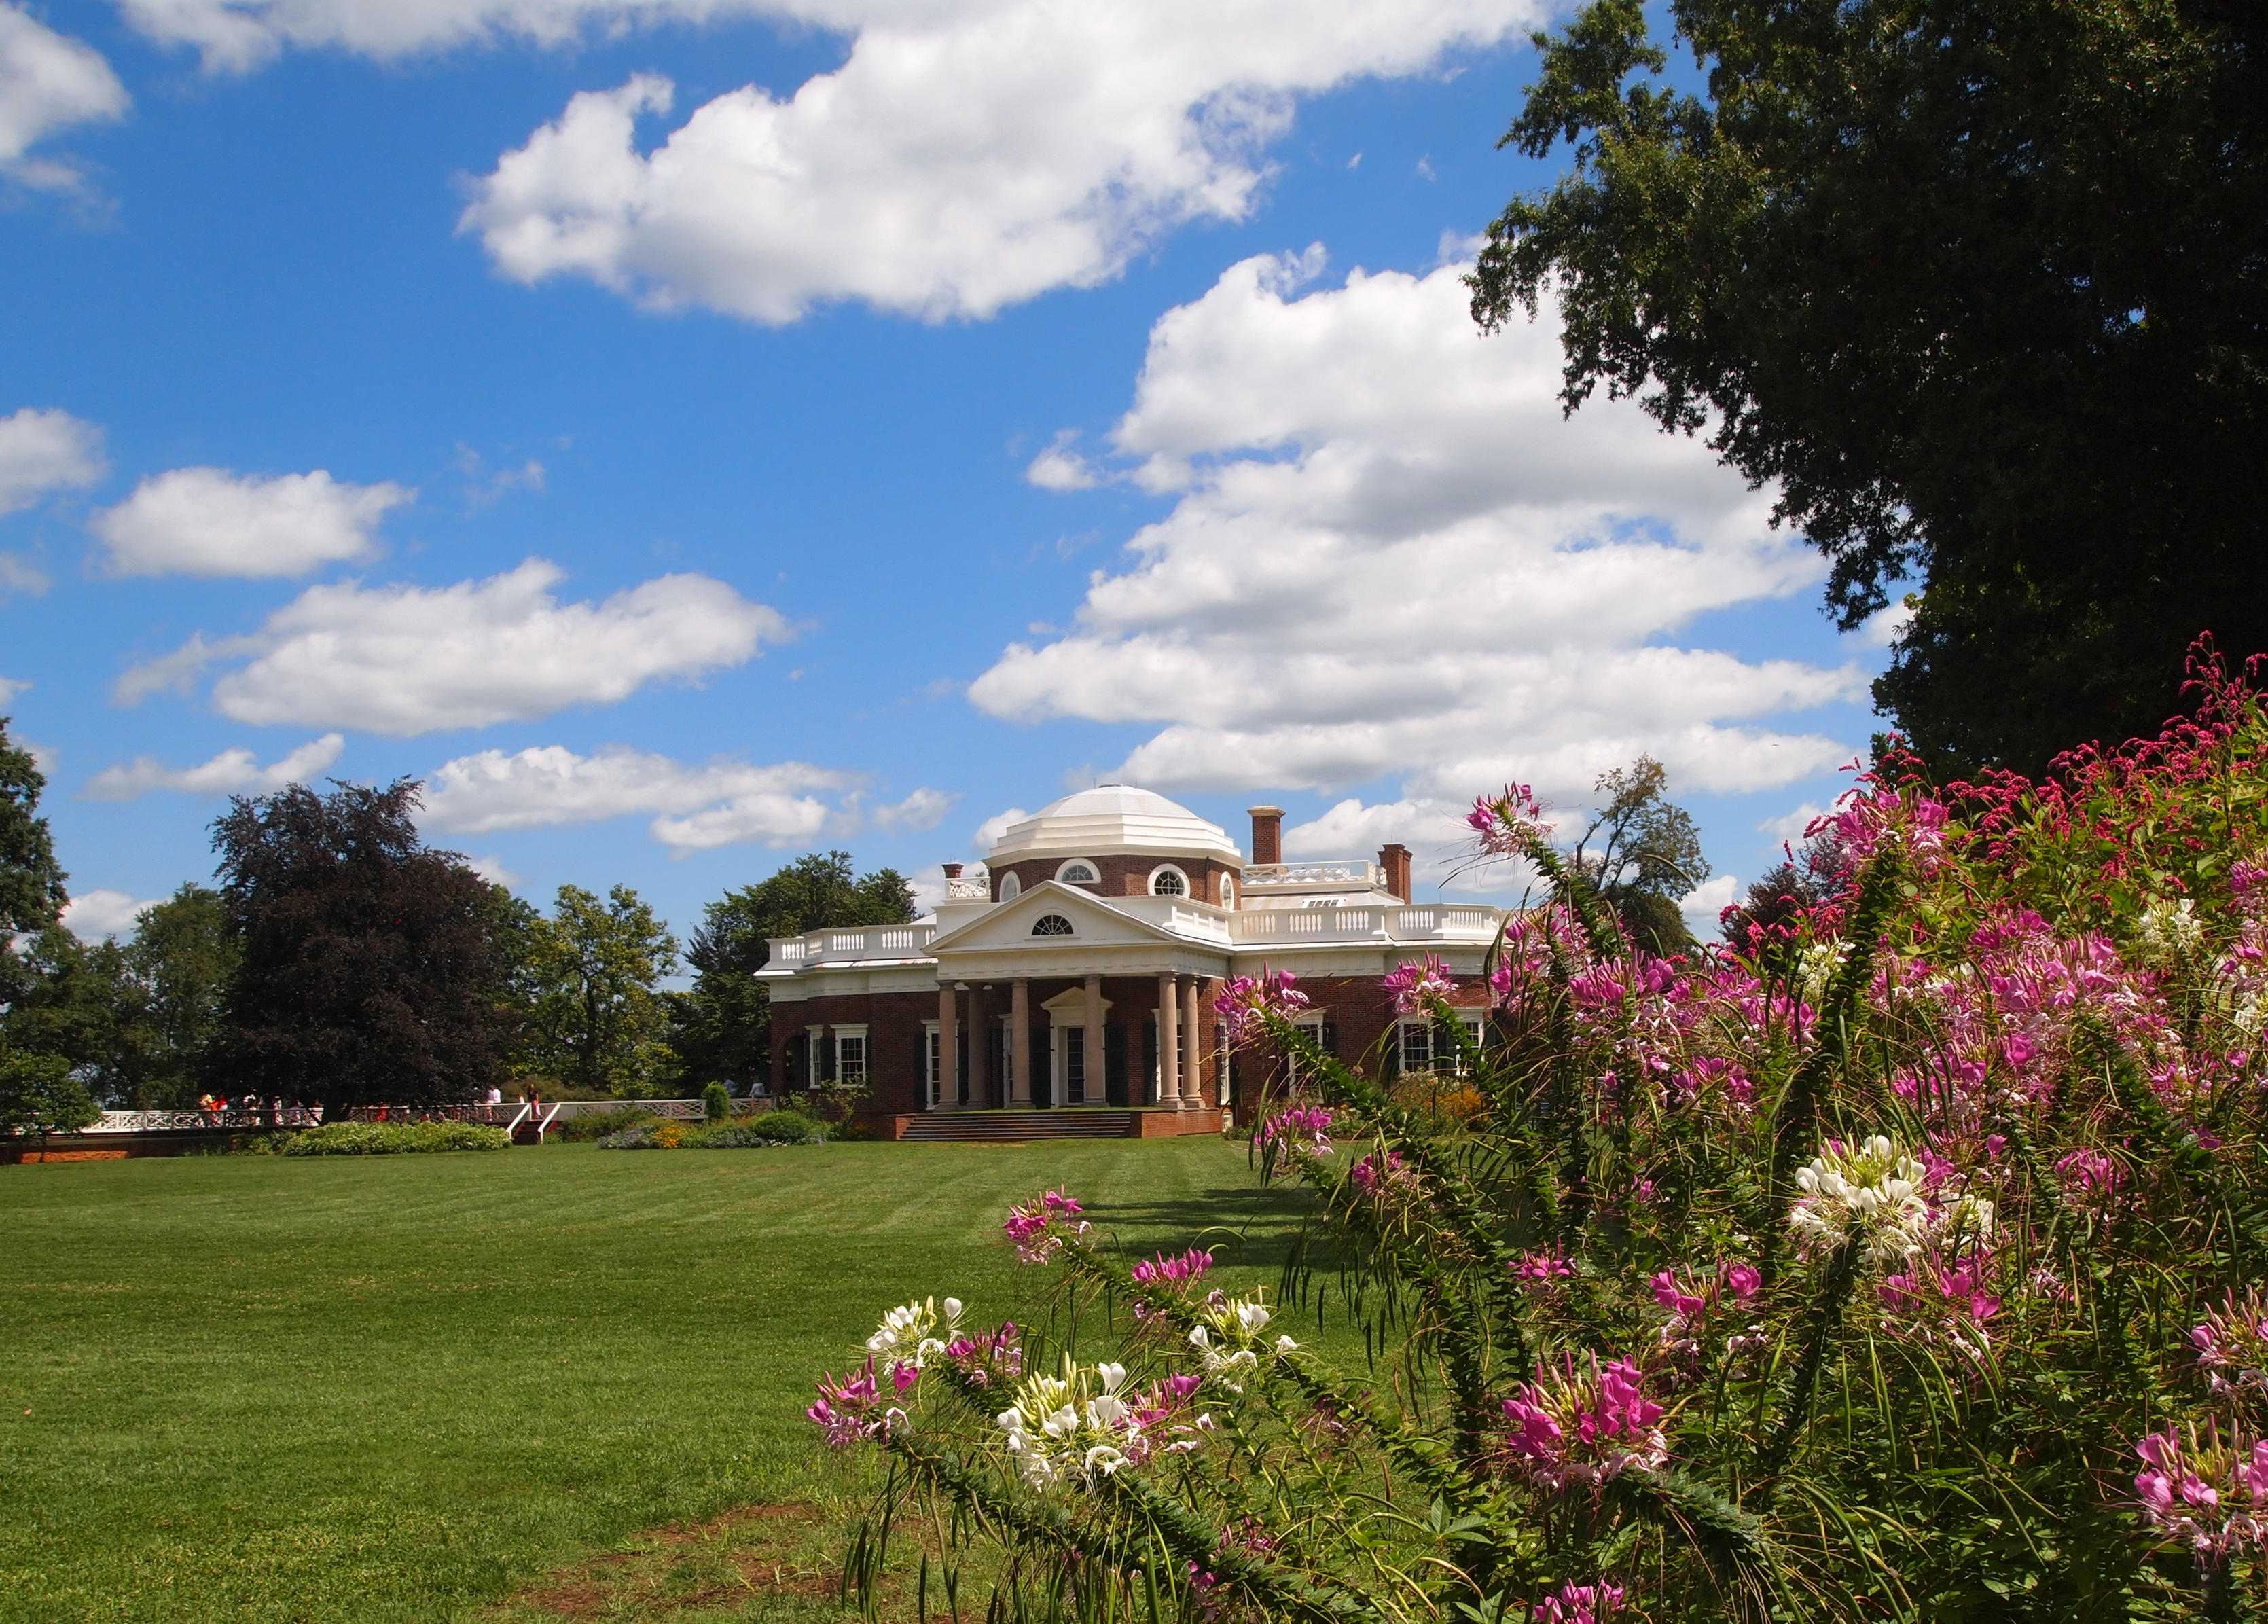 an analysis of monticello the house of thomas jefferson Thomas jefferson's monticello house and grounds are well worth the visit the tour is well organised you buy your ticket and you get a time and a place to convene and start the visit.